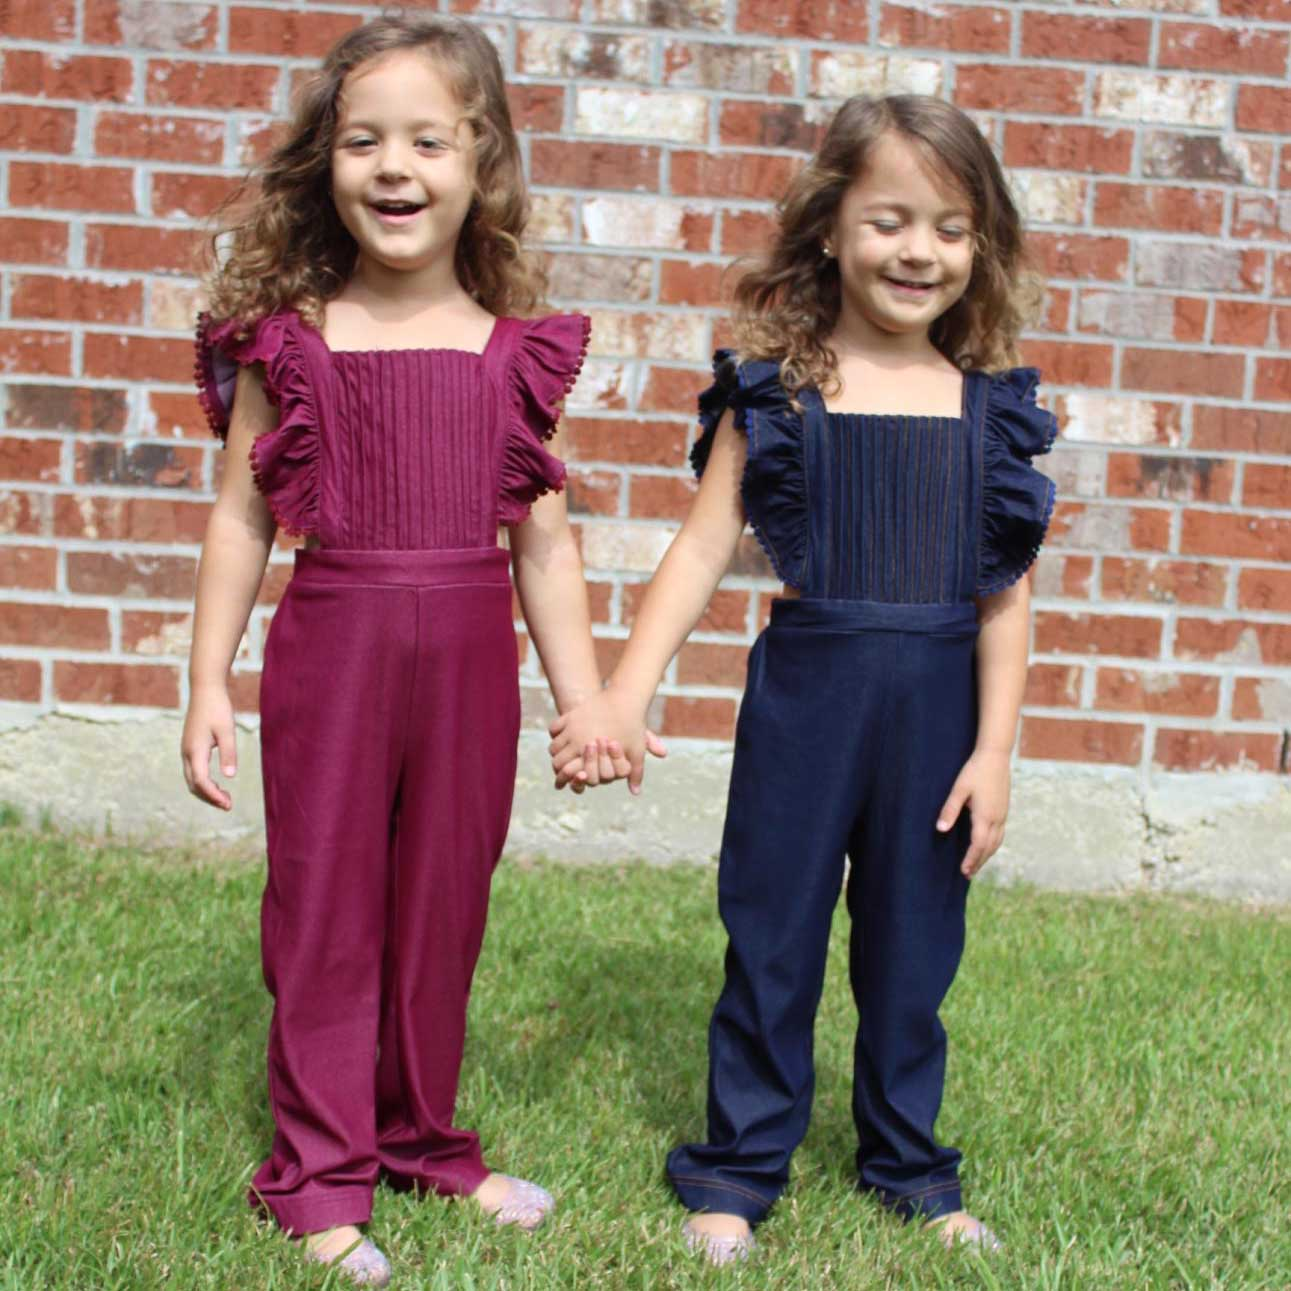 a2754736b Baby Girls Jumpsuit Romper Outfit Spring Fall Girl Playsuit Toddler Big  Girl Pleated Romper Children Clothes Kids Denim Overalls-in Overalls from  Mother ...